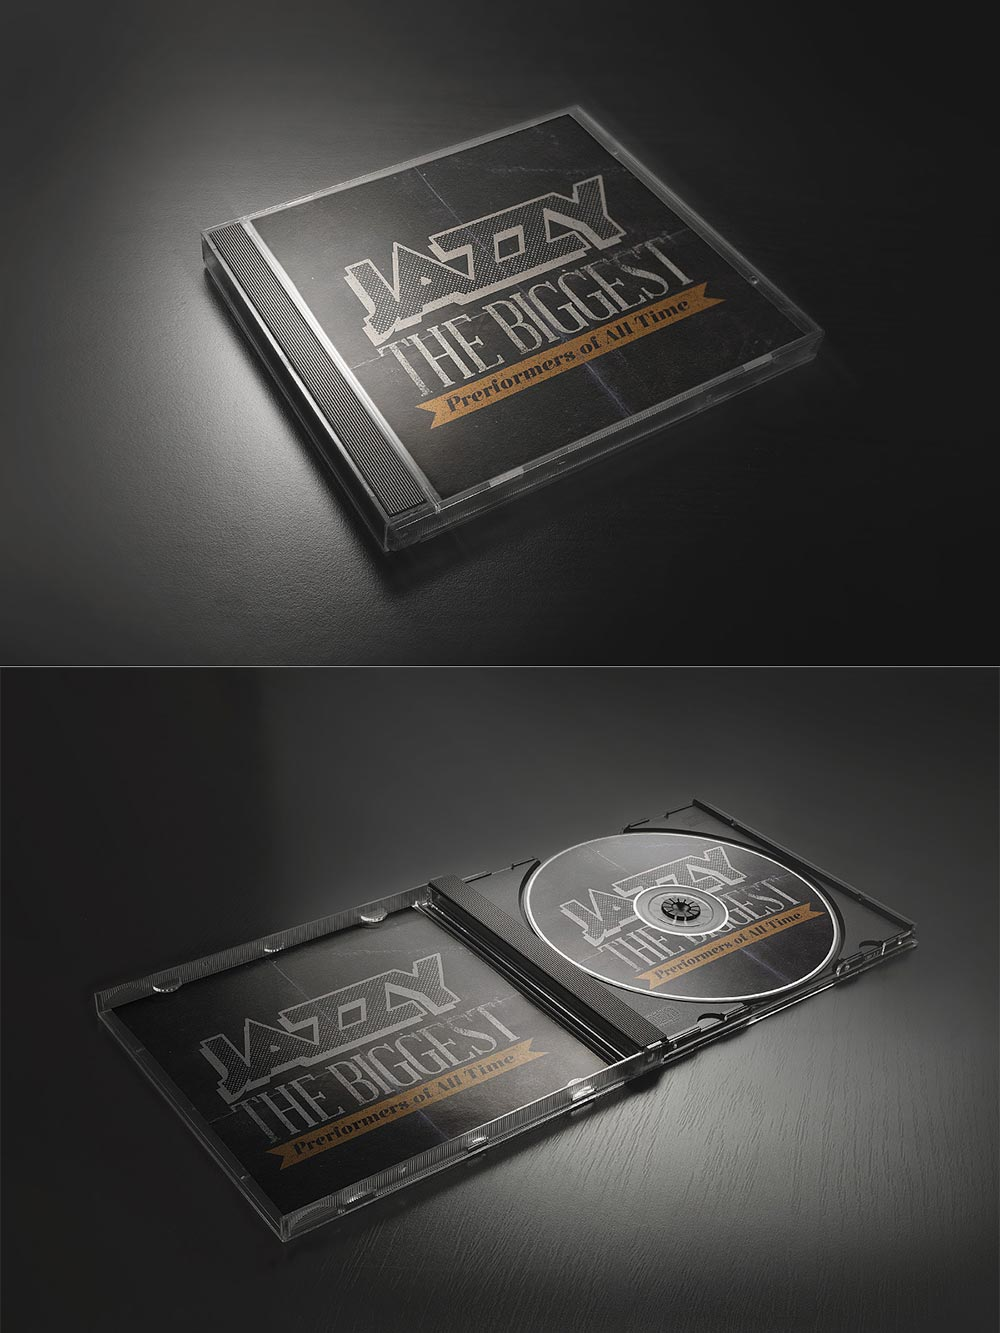 Free CD Cover & Case Mockup